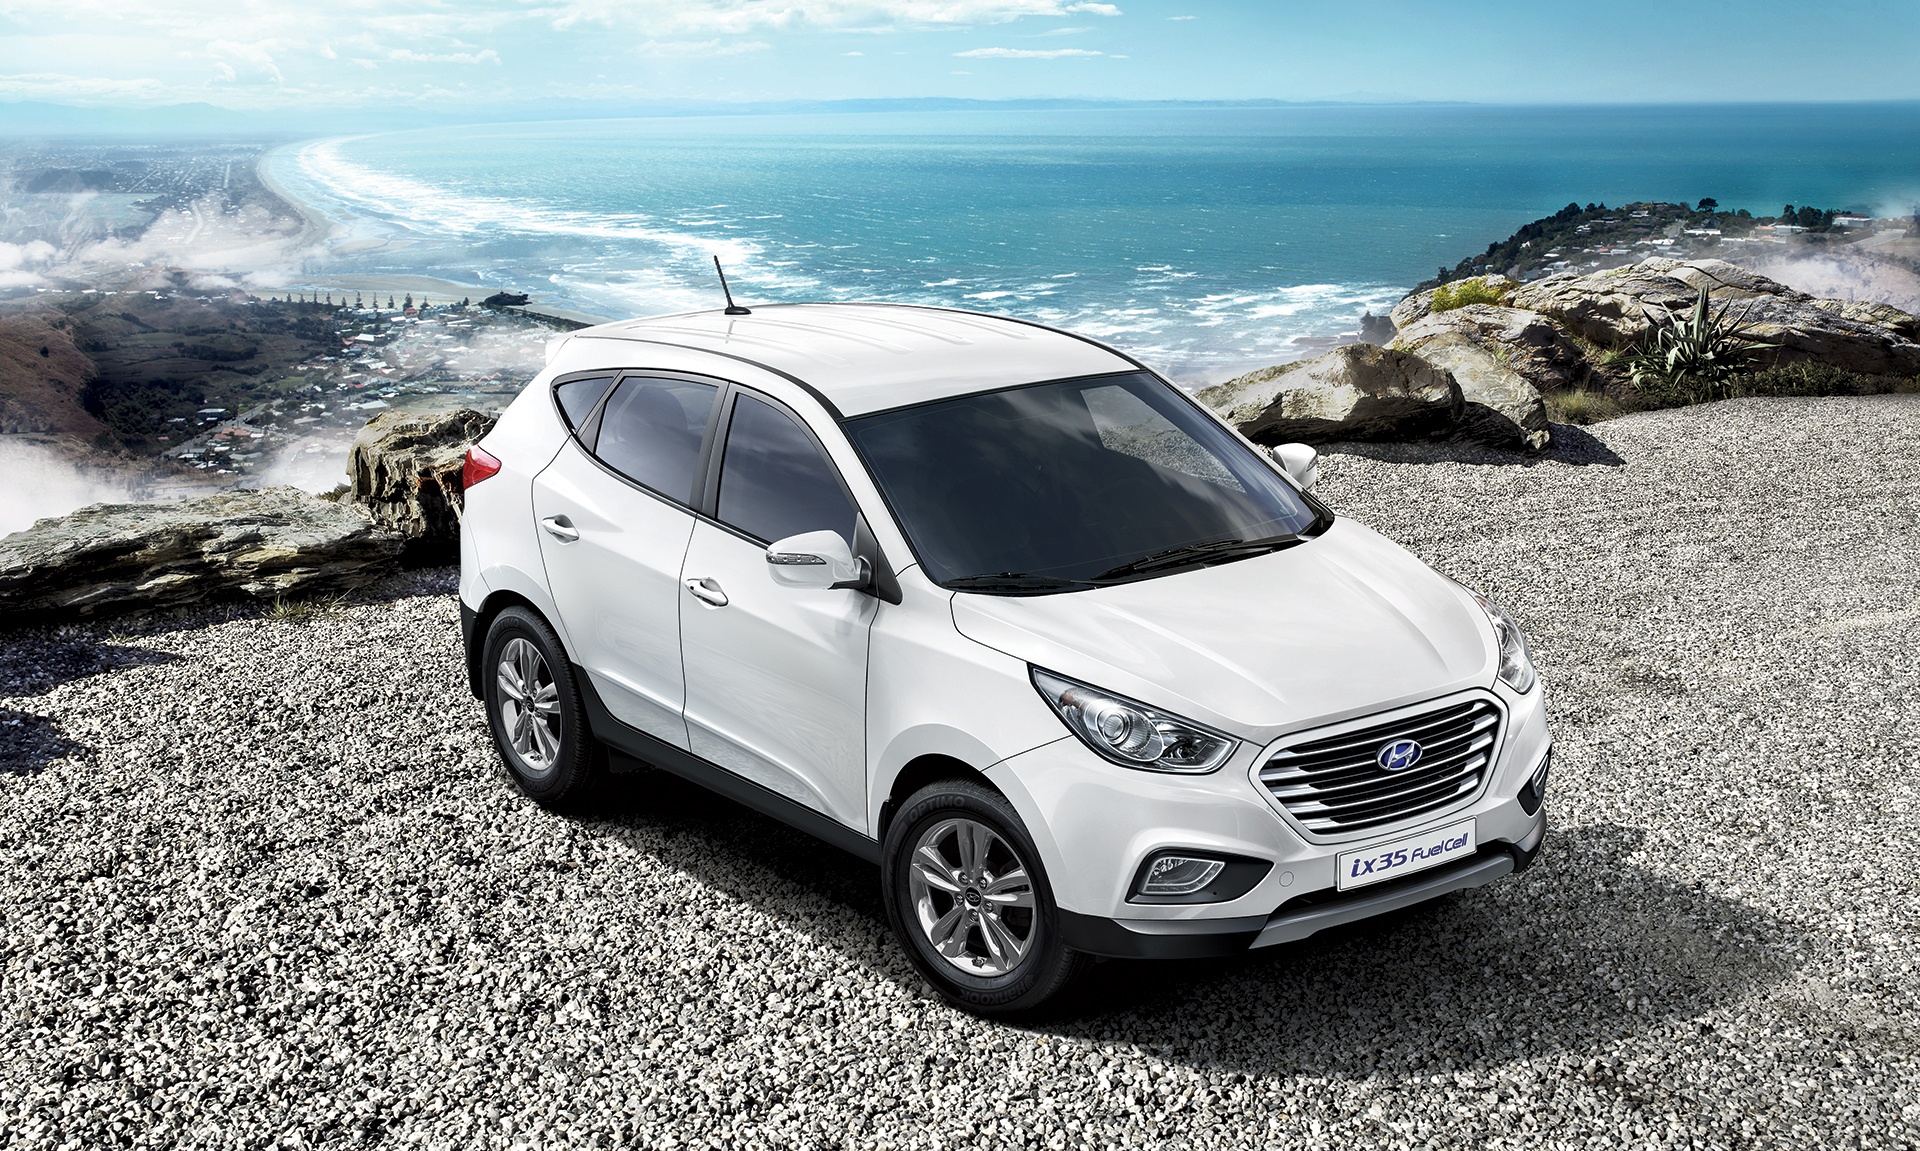 Hyundai x35 fuel cell